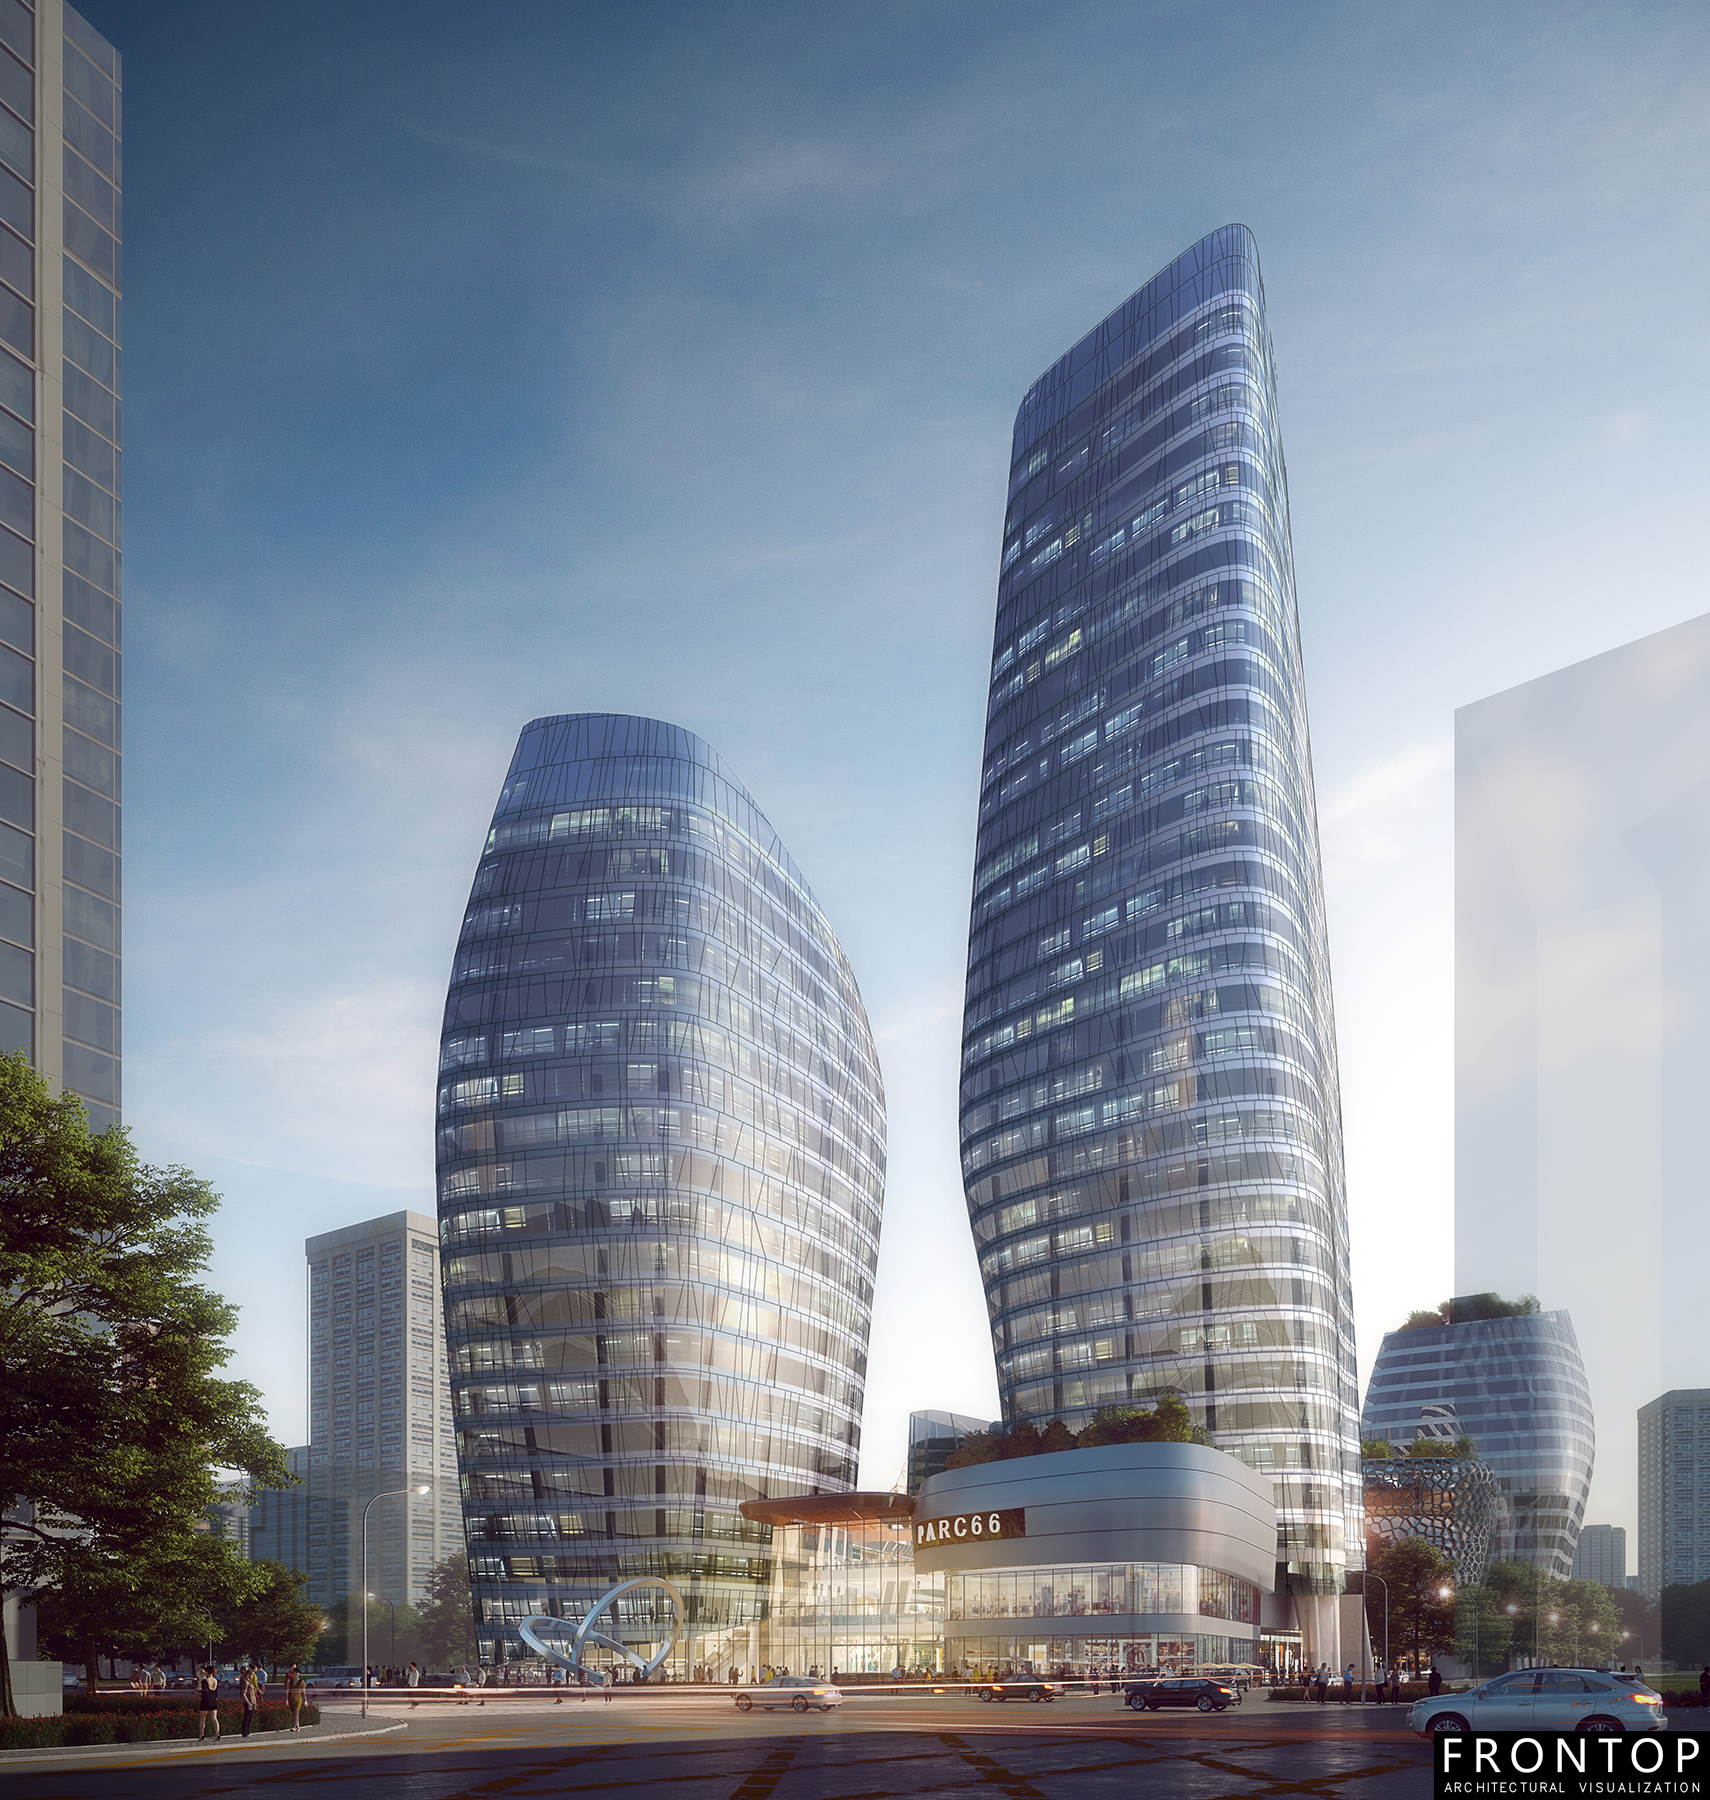 Wholesale Discount Visulization Architectural Rendering - Hangzhou Competition – Frontop